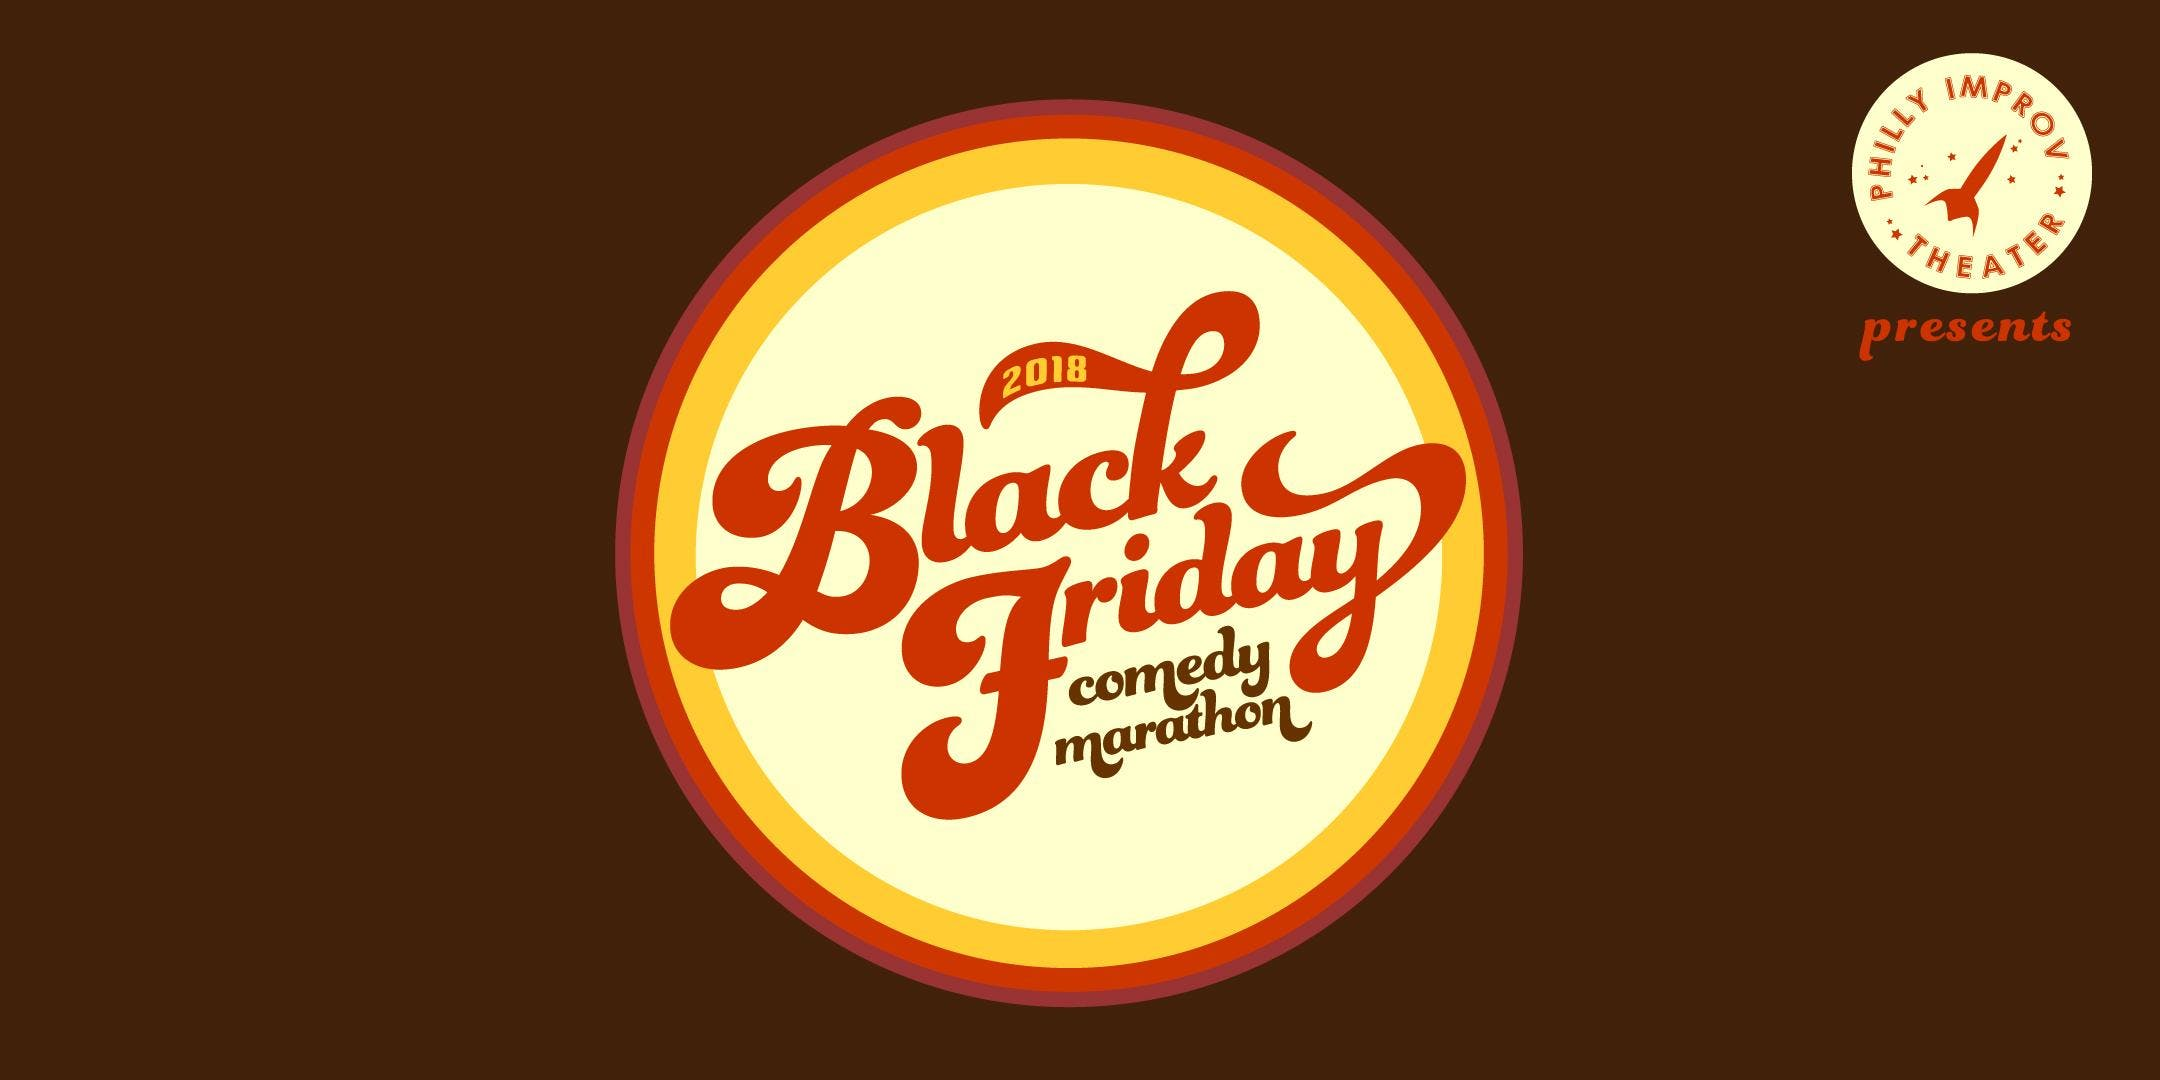 Black Friday Comedy Marathon (BFCM) 2018